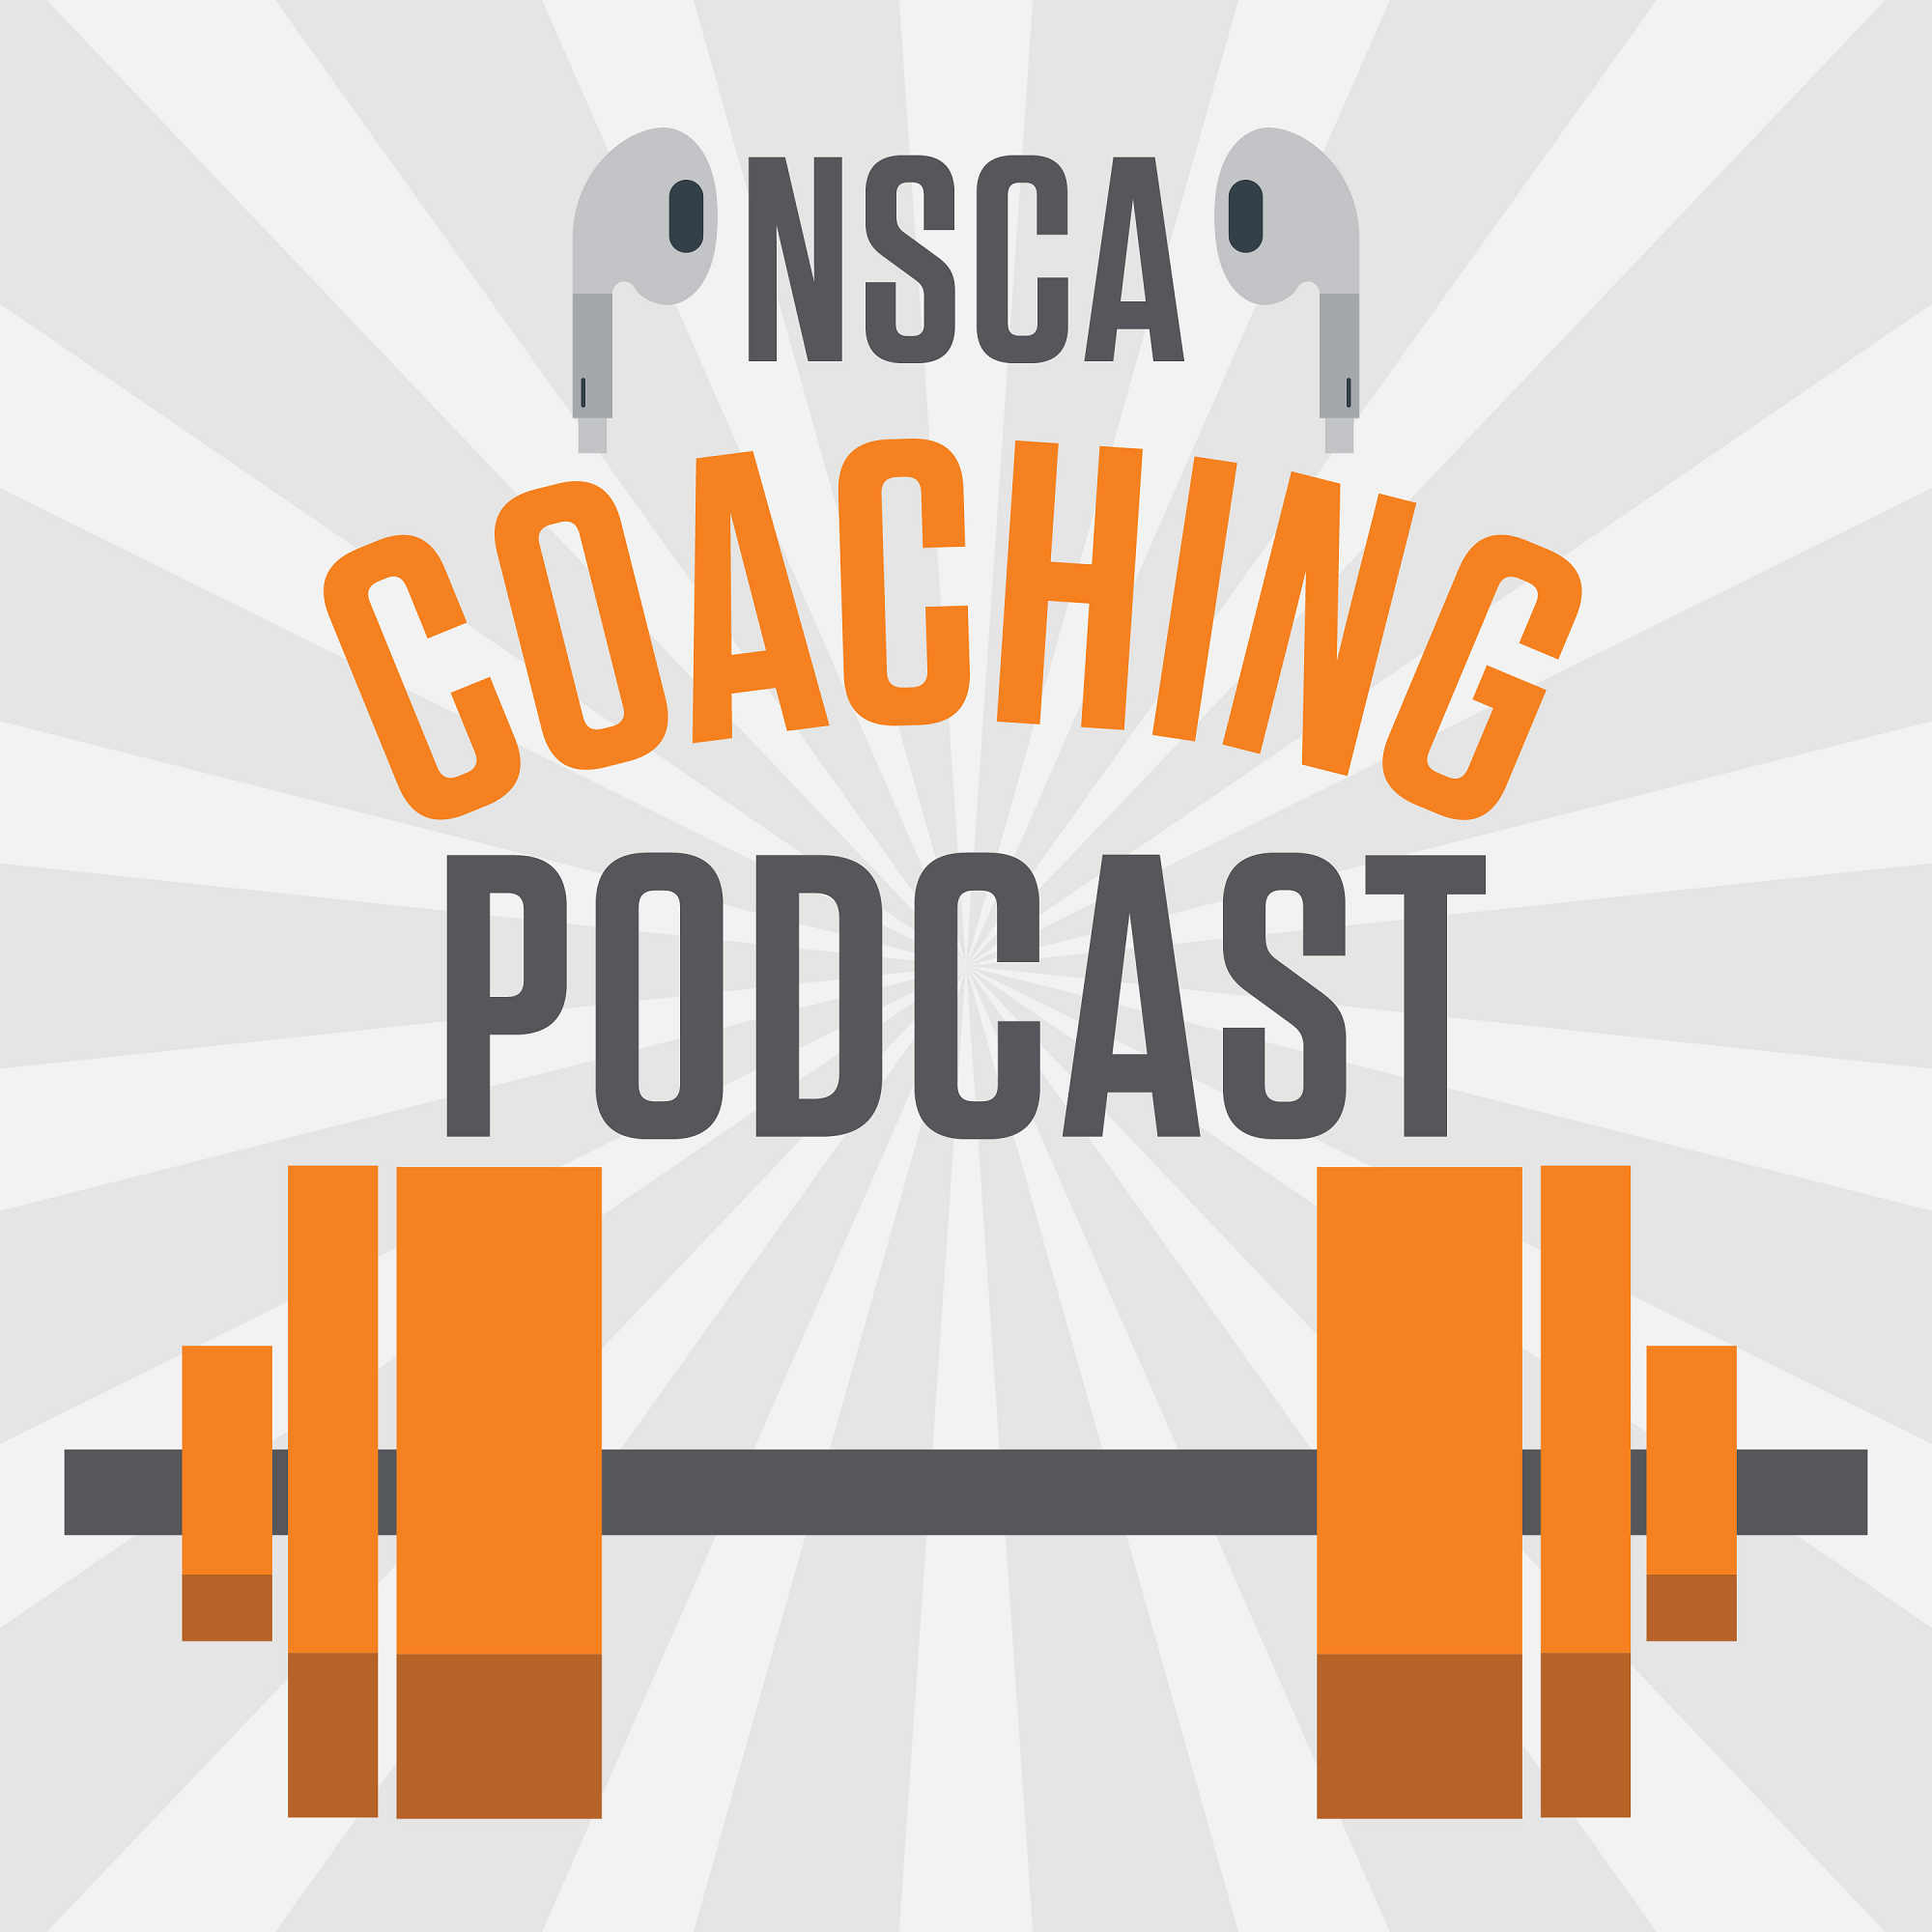 NSCA's Coaching Podcast